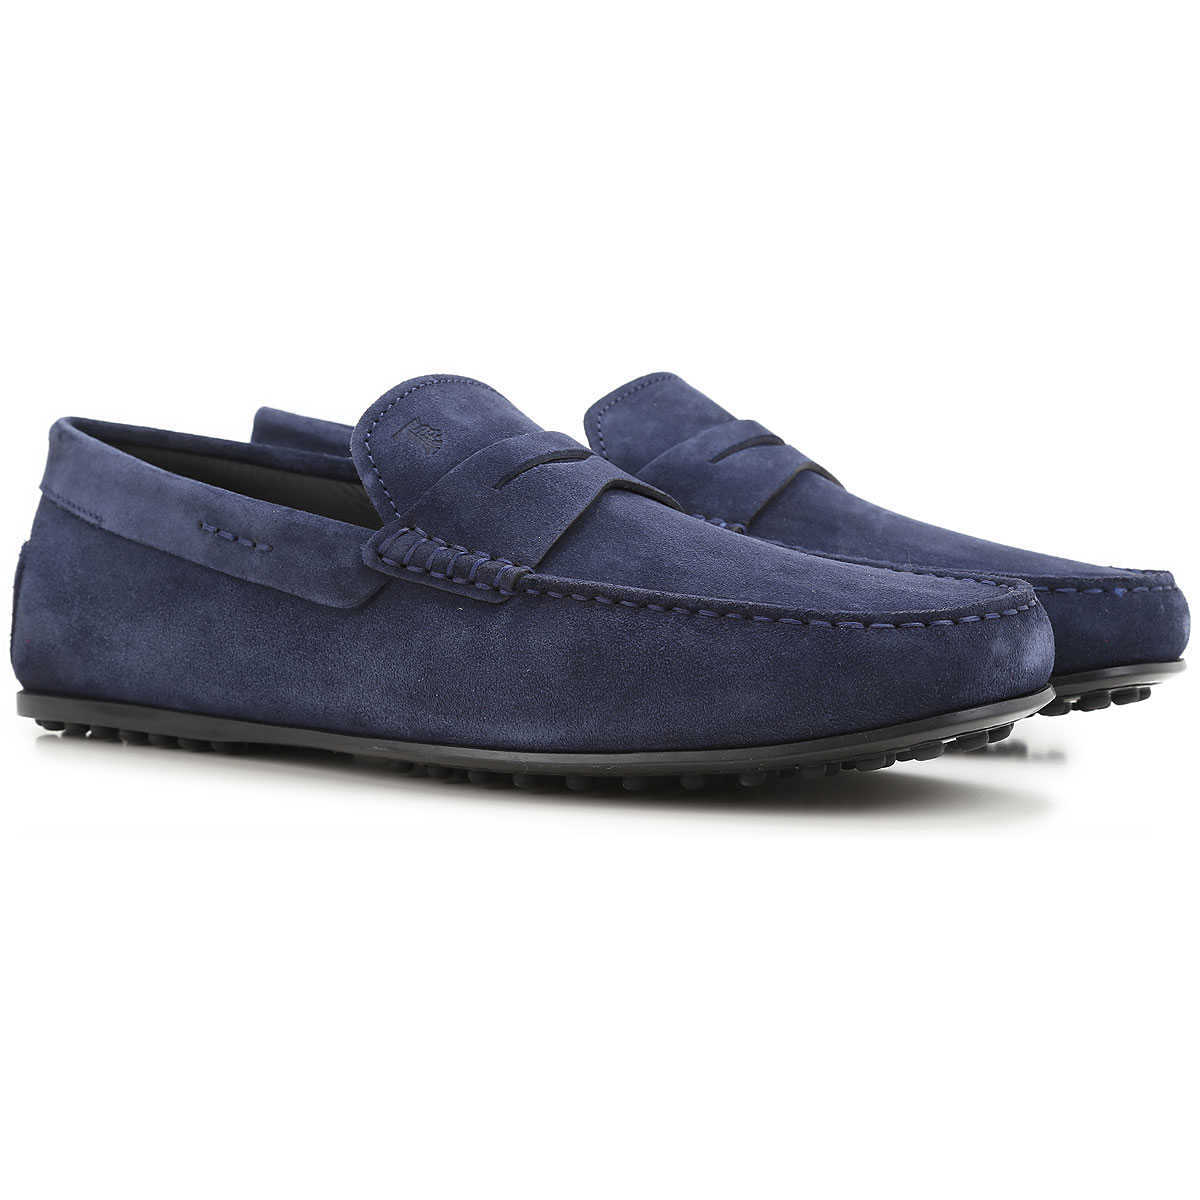 Tods Loafers for Men Blue UK - GOOFASH